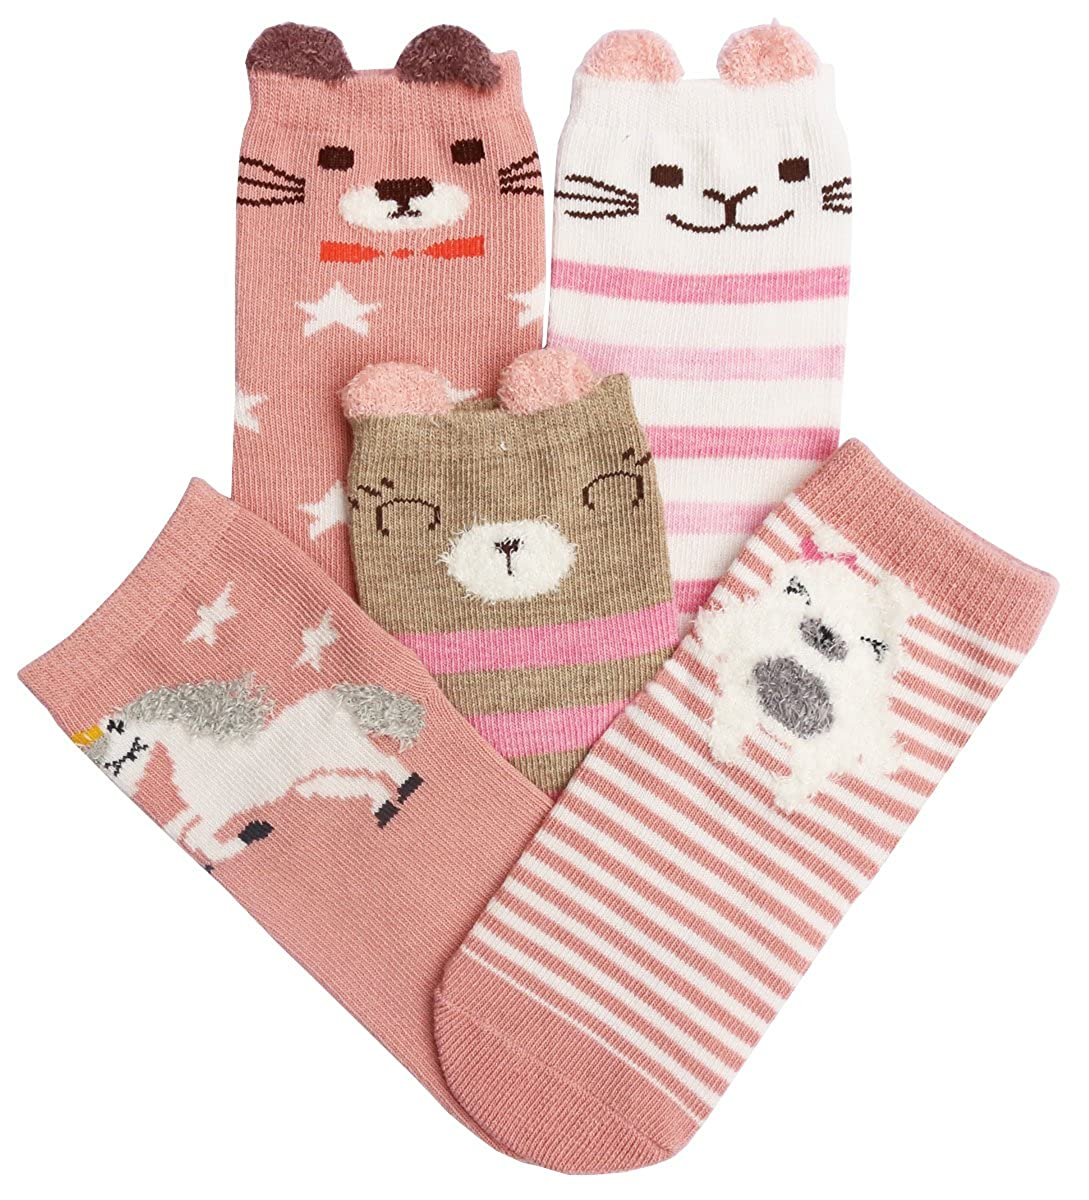 CHUNG Toddler Little Girls Cotton Crew Socks Cute Animal Pattern Pack of 5 1-10Y